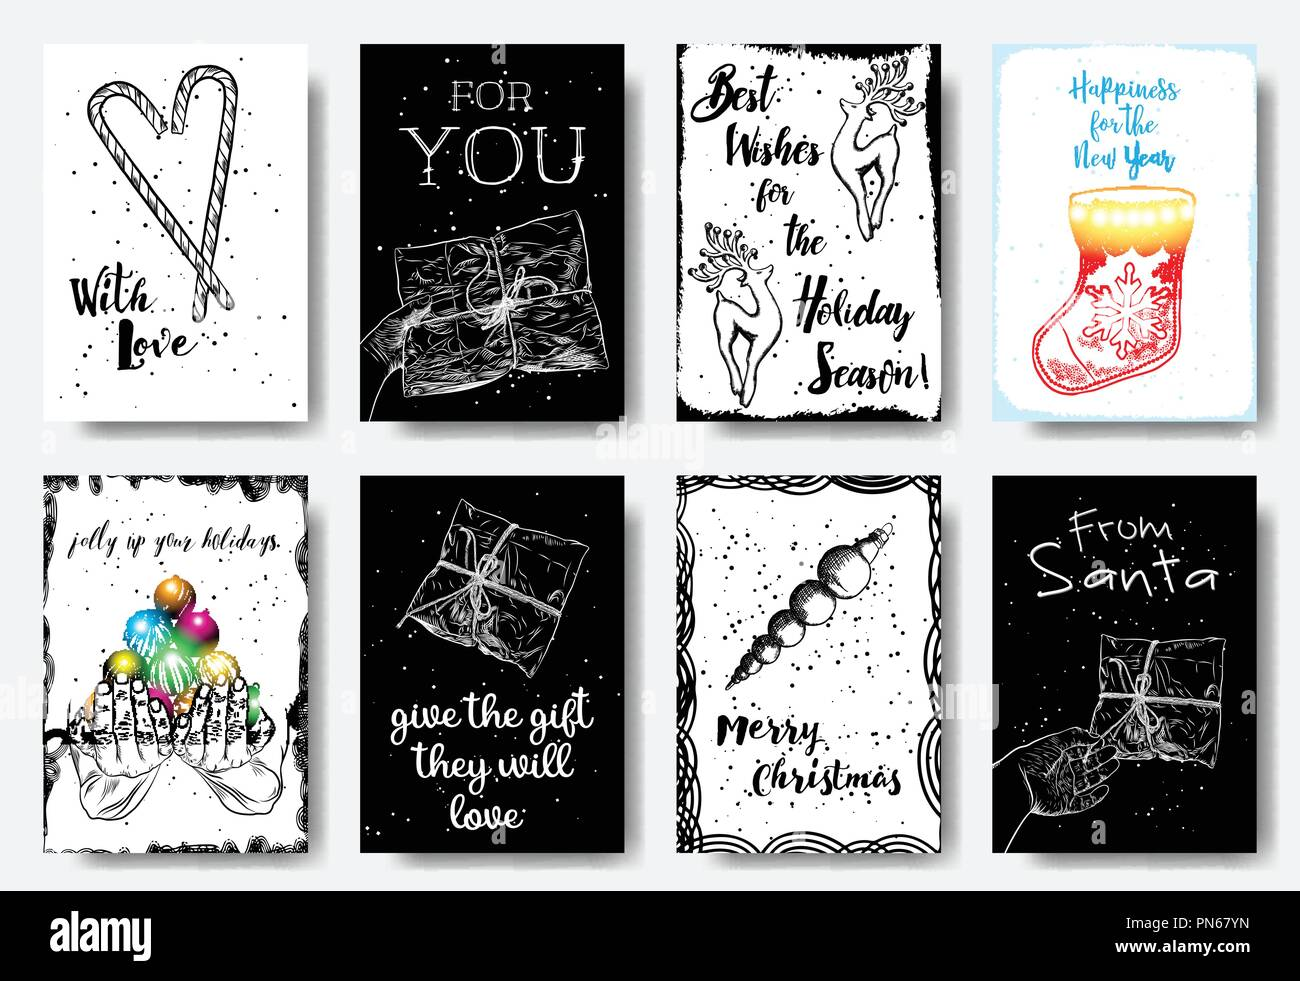 big set of creative holiday banner templates christmas and new year hand drawn illustrations for card posters email and newsletter designs ads pr